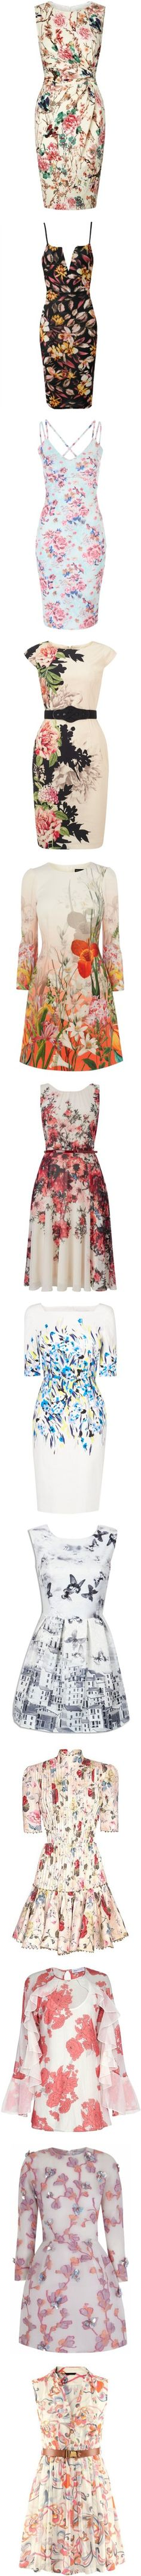 MY SPRING DRESS COLLECTION by purplerose27 on Polyvore featuring women's fashion, dresses, vestidos, ruched jersey dress, sleeveless jersey dress, white sleeveless dress, floral dresses, sleeveless dress, white deep v neck dress and white floral print dress